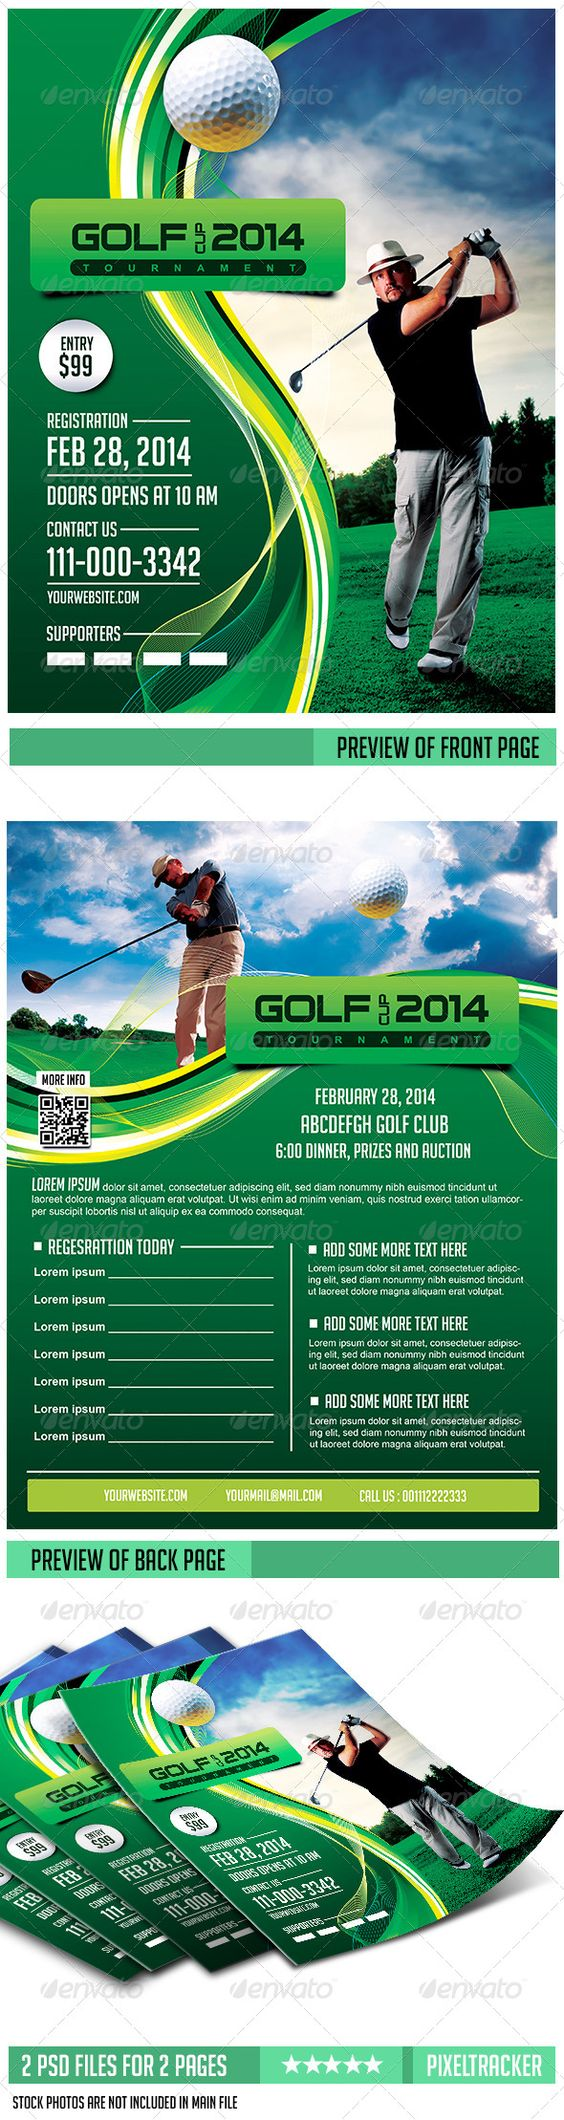 Golf Flyer Template - 2 Pages Download The full PSD Flyer Here…